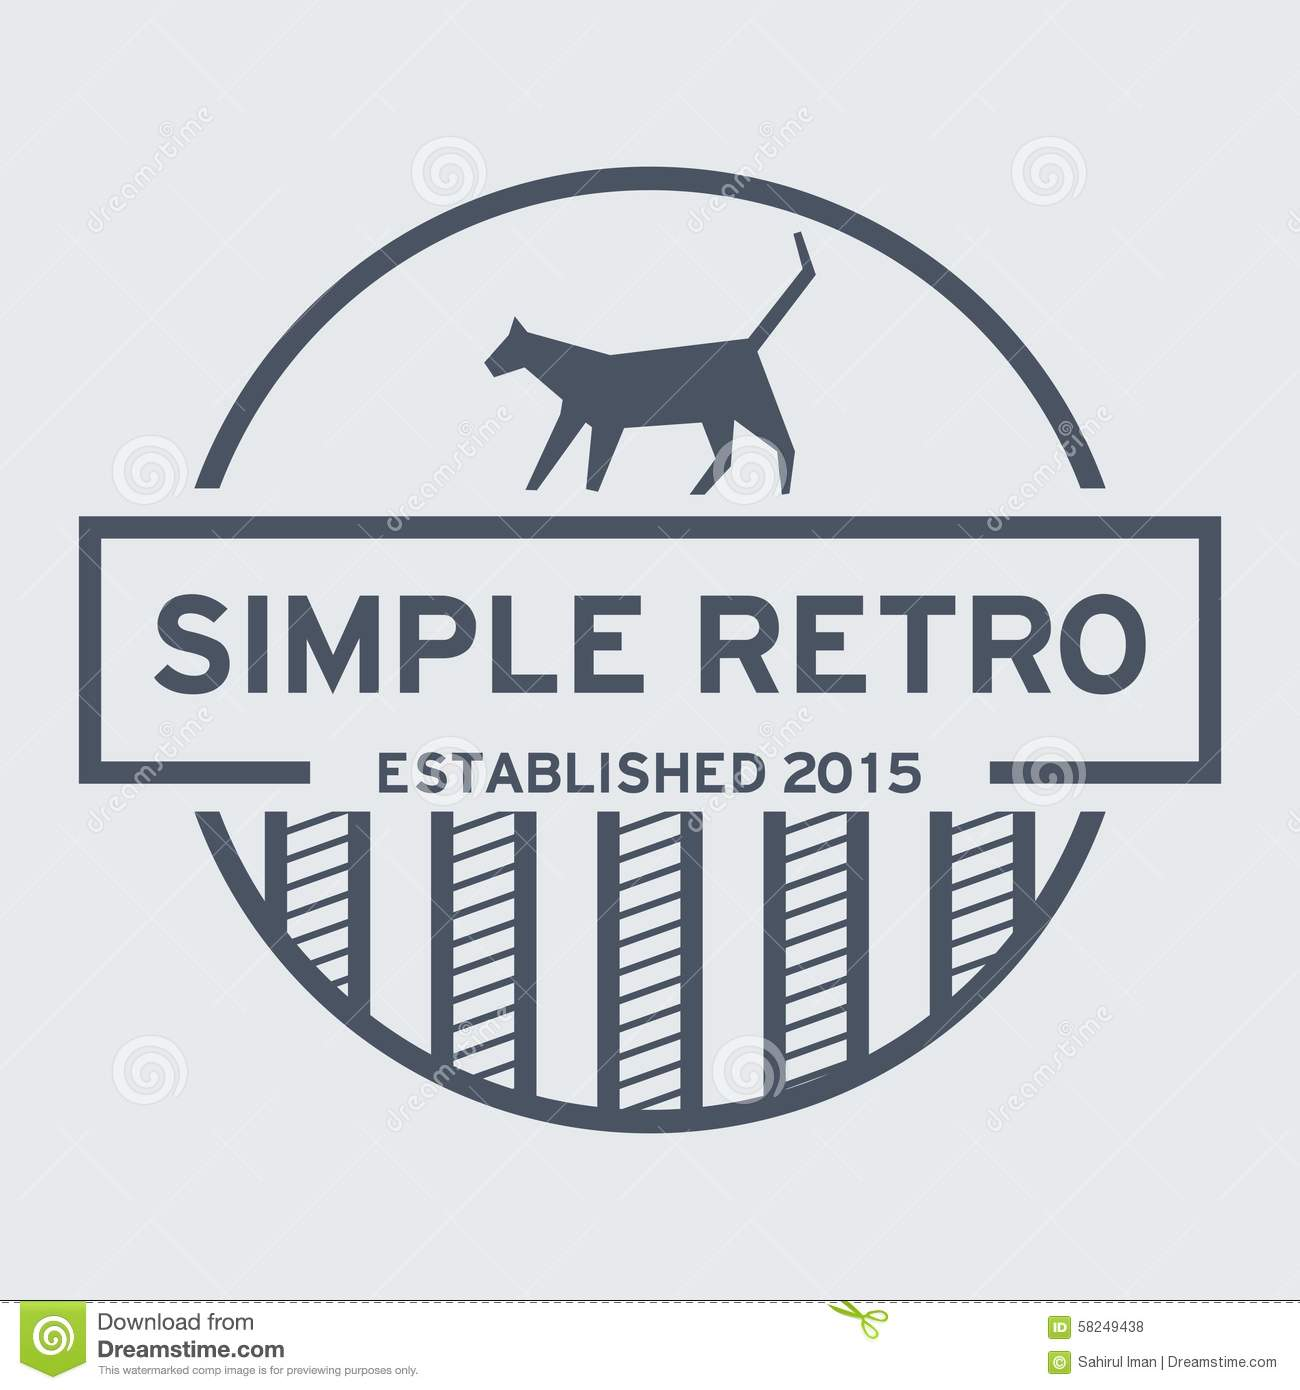 simple retro logo template stock vector illustration of font 58249438